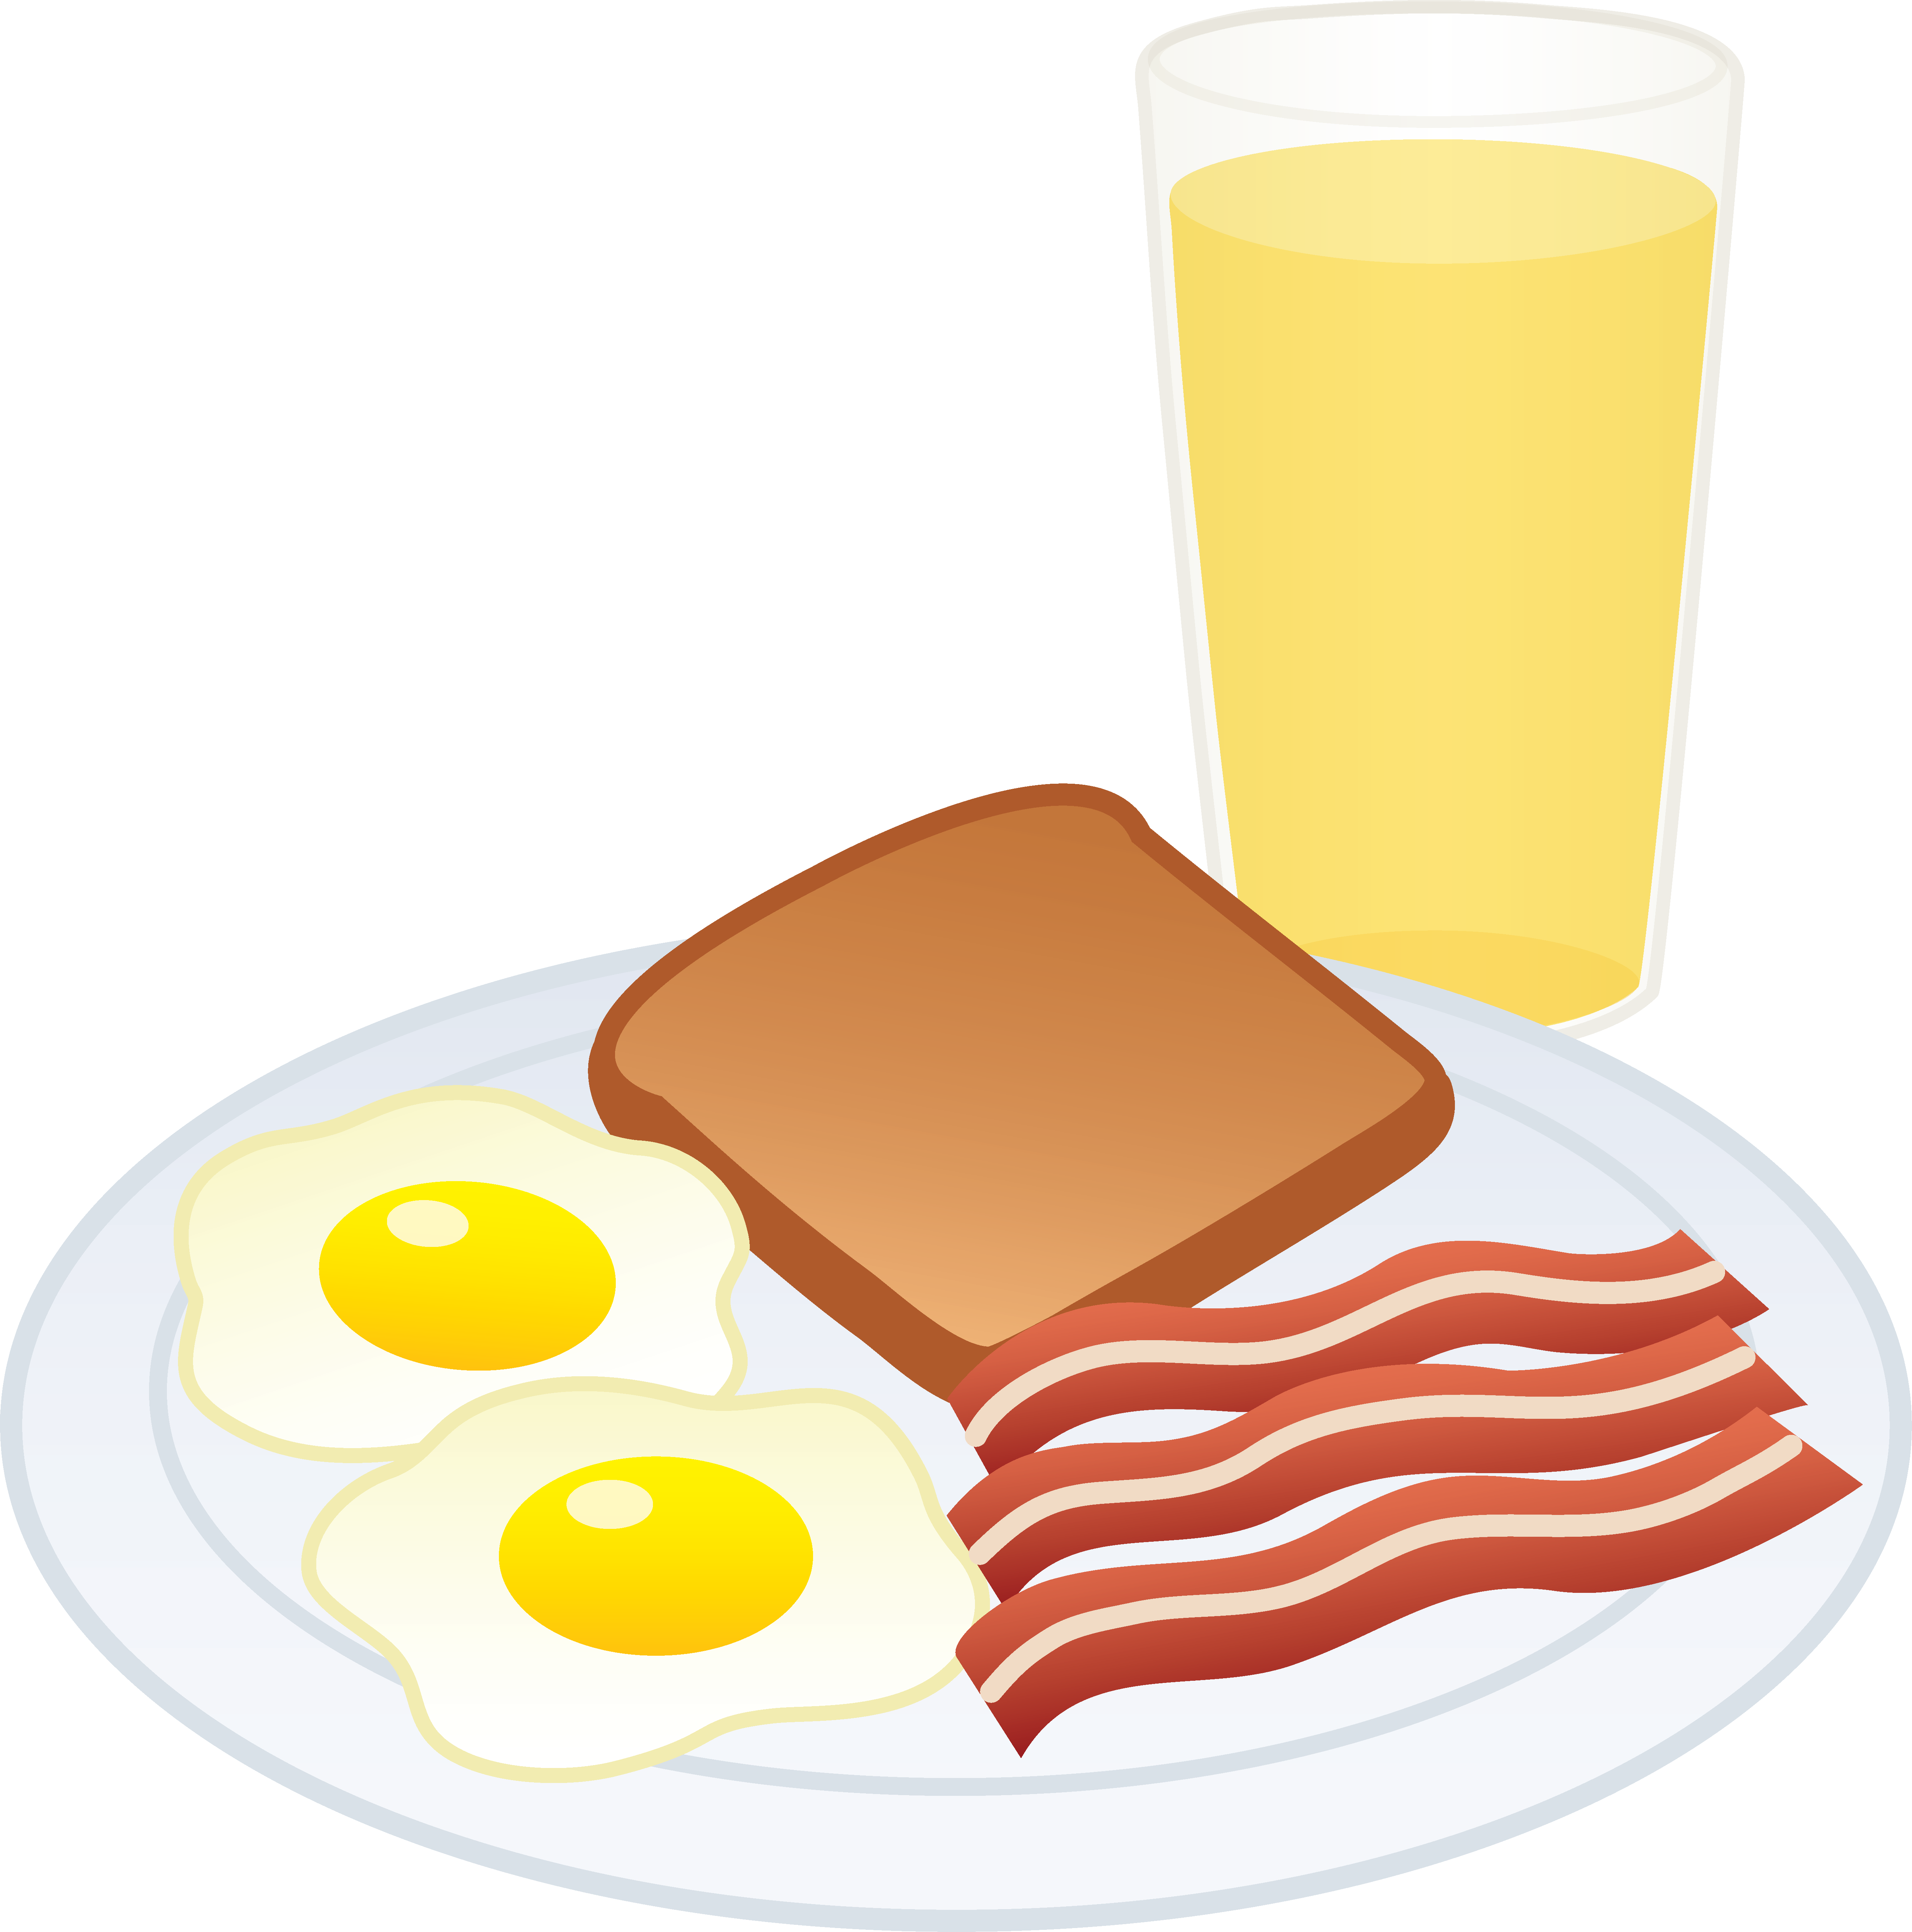 Download Breakfast Png Clipart image #46649